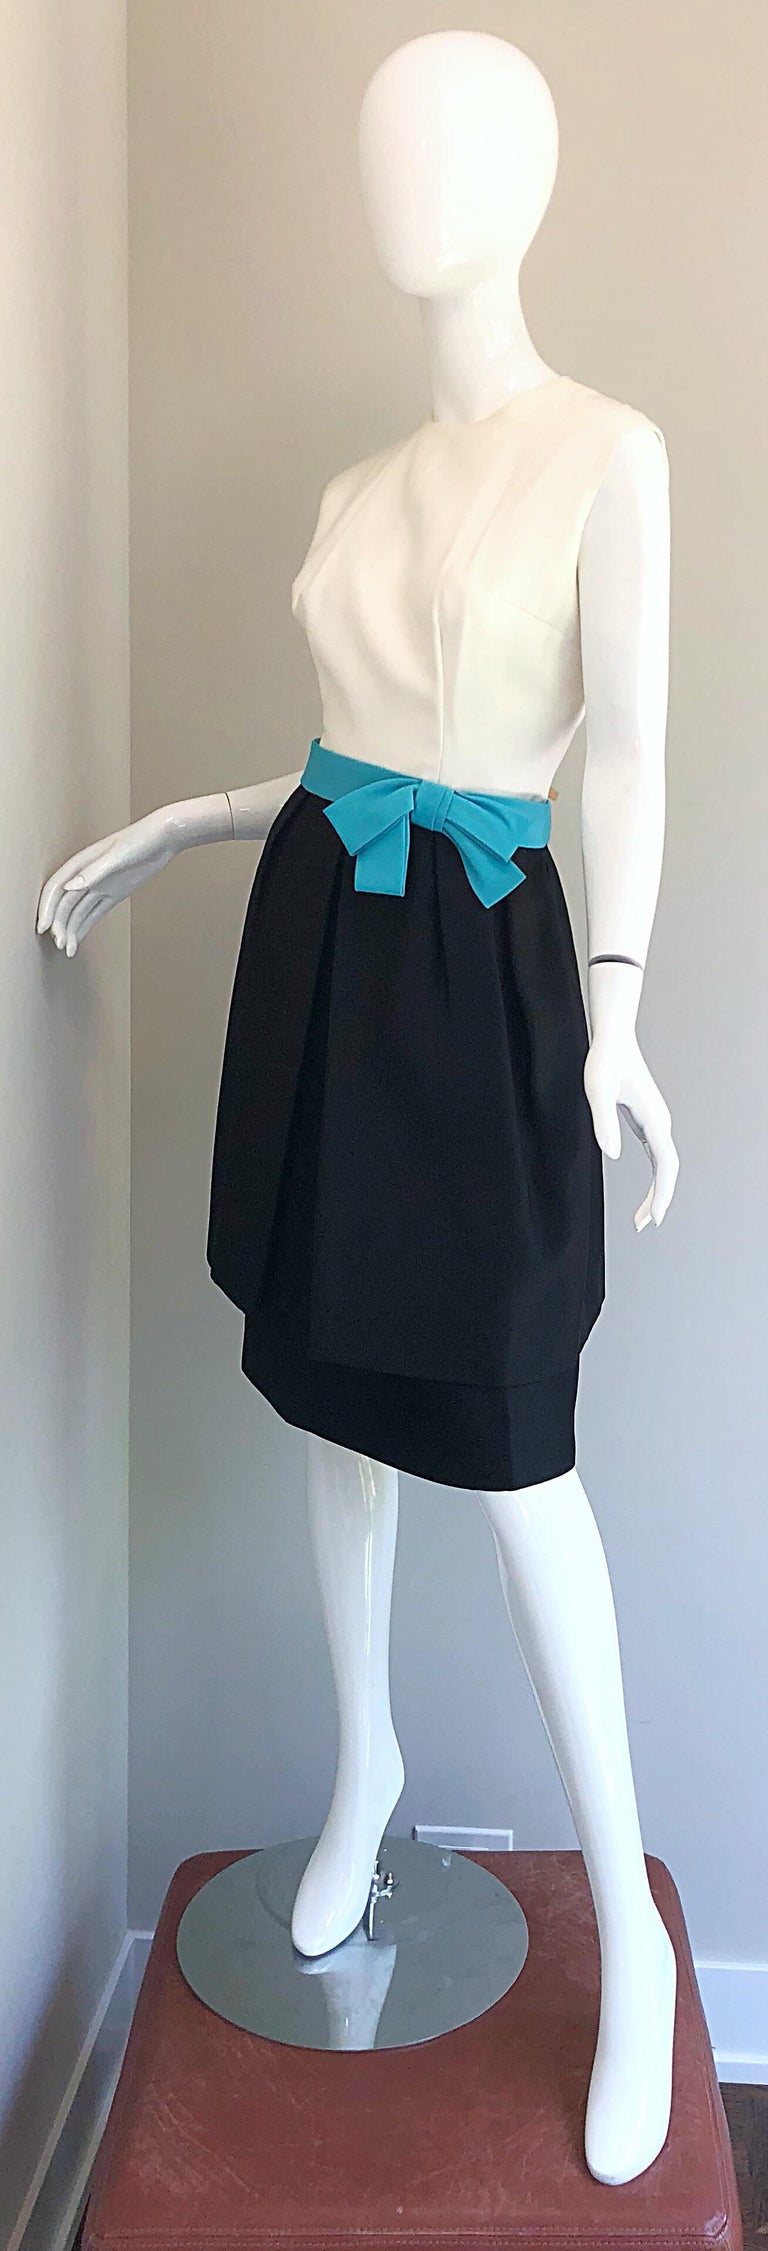 1950s B. Altman Black and White + Turquoise Blue Vintage 50s Silk Cocktail Dress For Sale 5